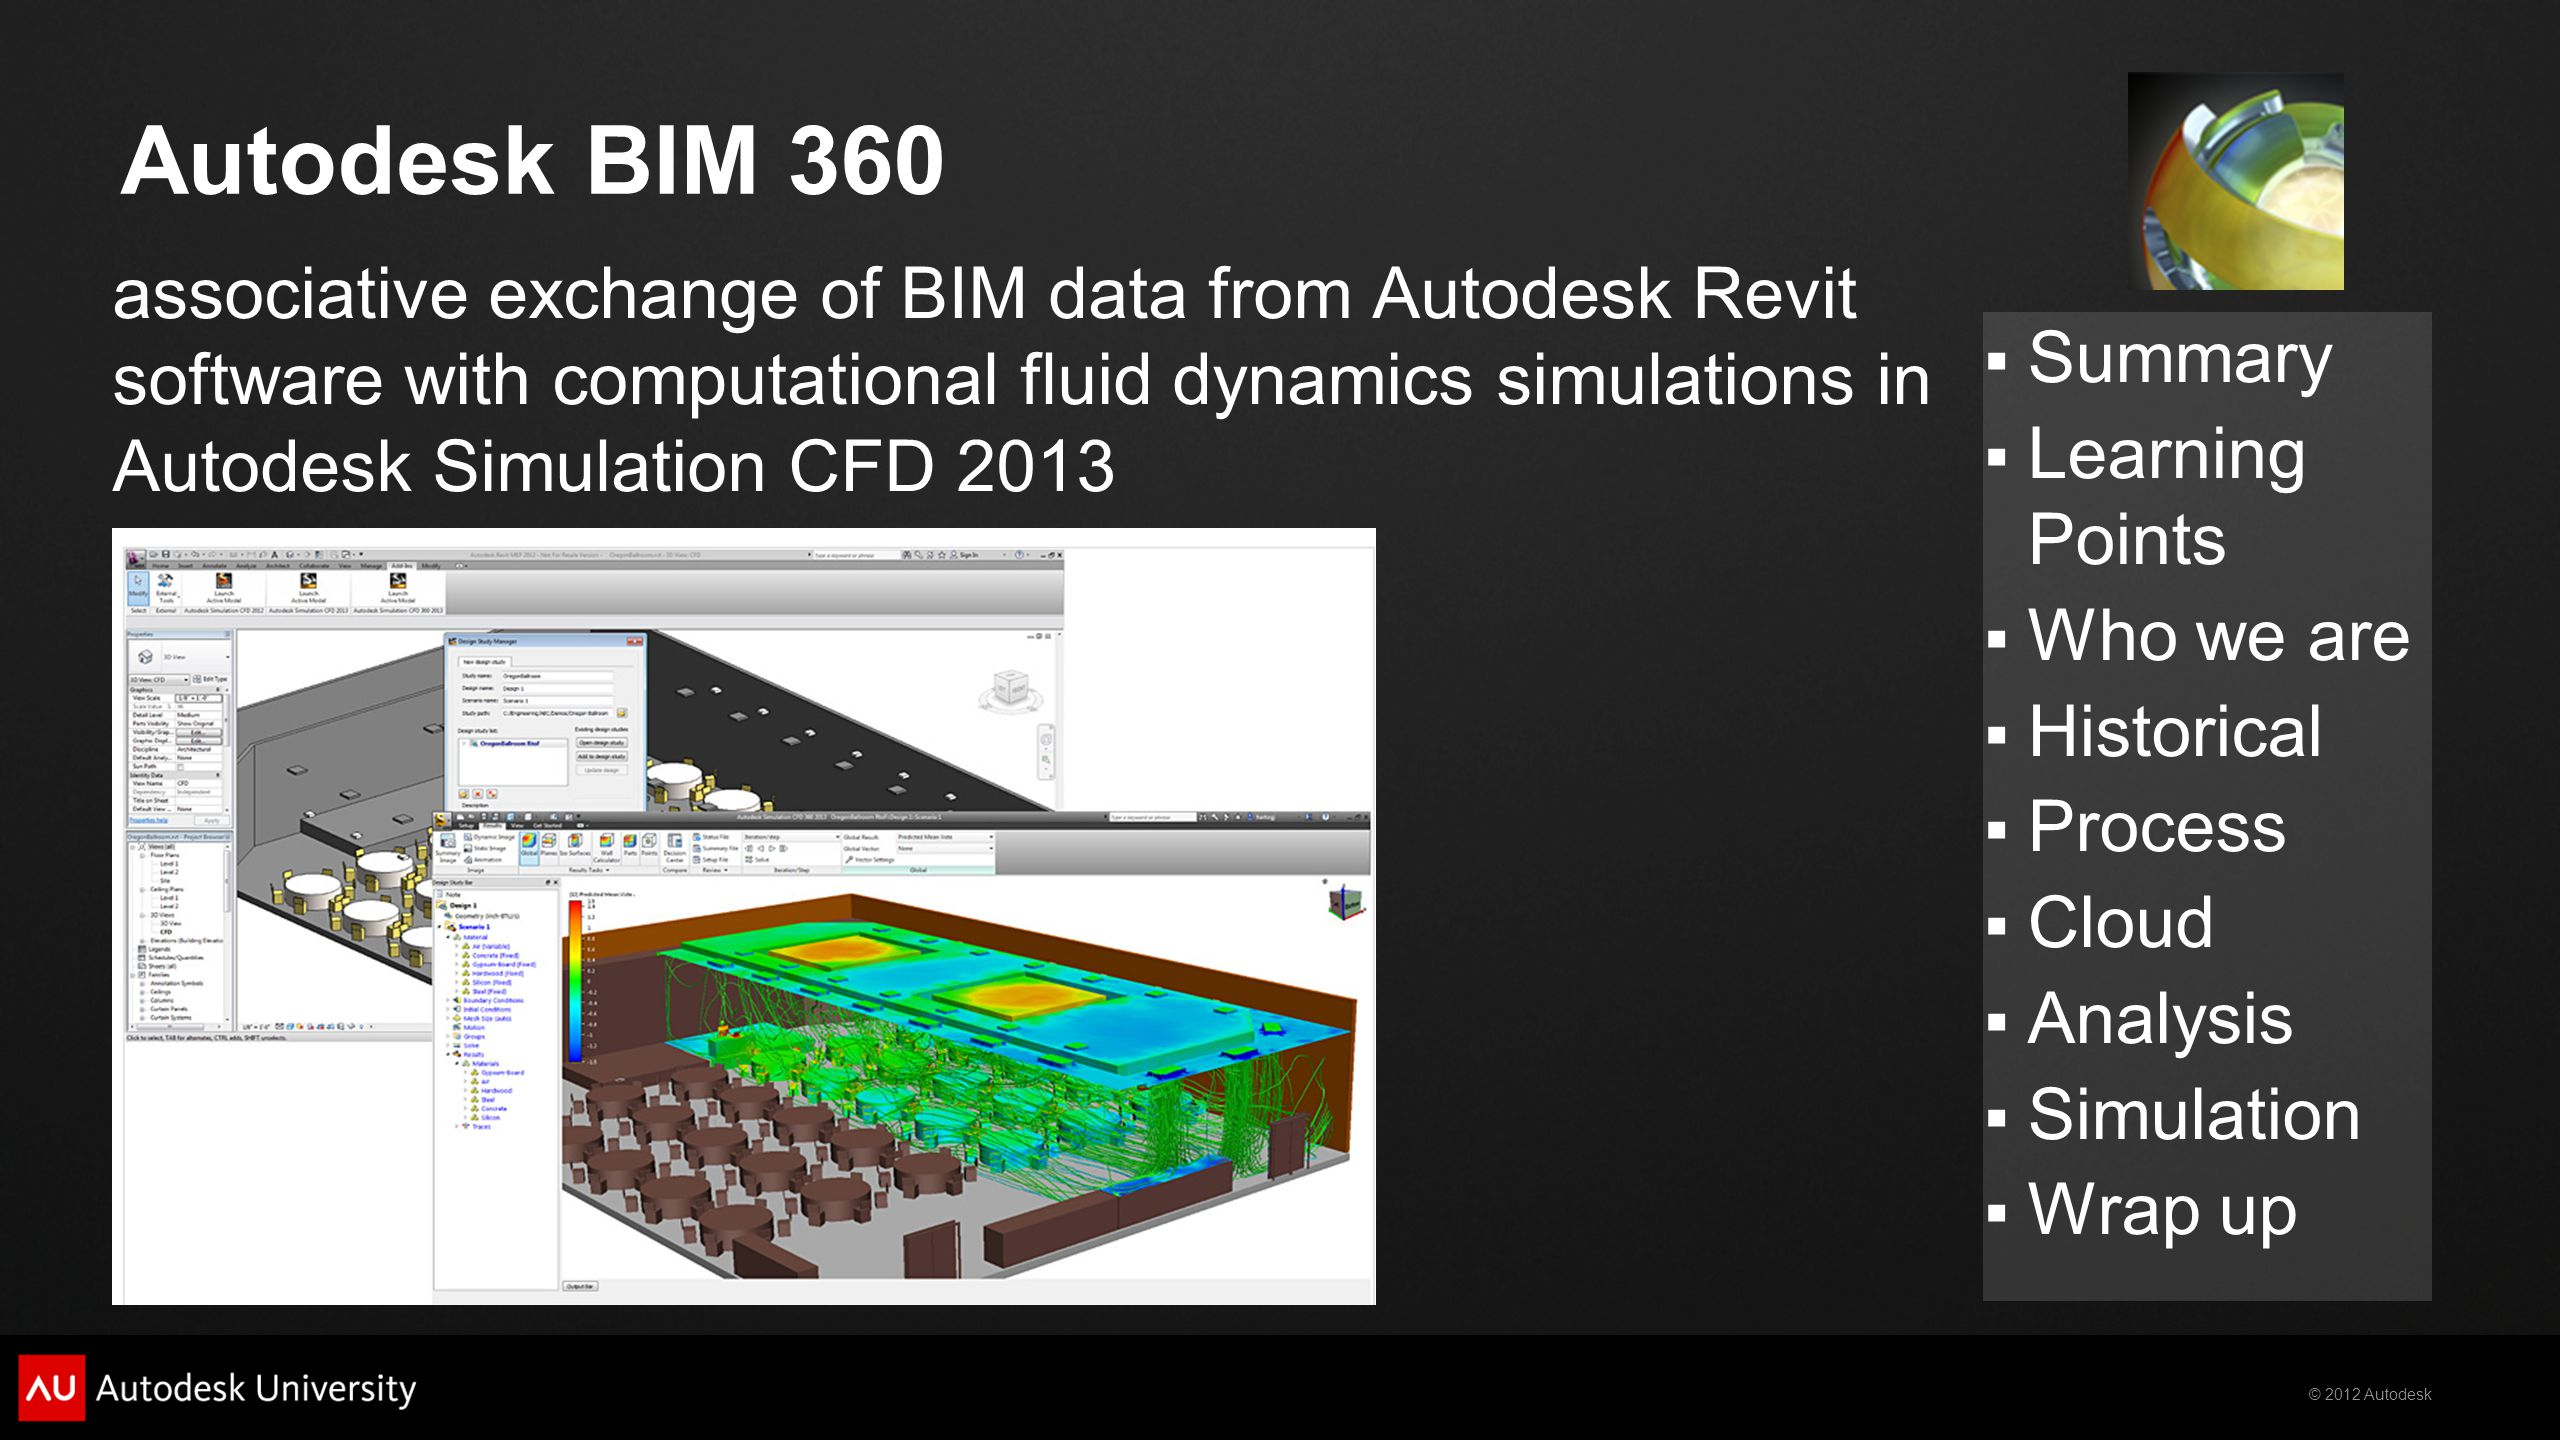 © 2012 Autodesk  Summary  Learning Points  Who we are  Historical  Process  Cloud  Analysis  Simulation  Wrap up Autodesk BIM 360 associative exchange of BIM data from Autodesk Revit software with computational fluid dynamics simulations in Autodesk Simulation CFD 2013